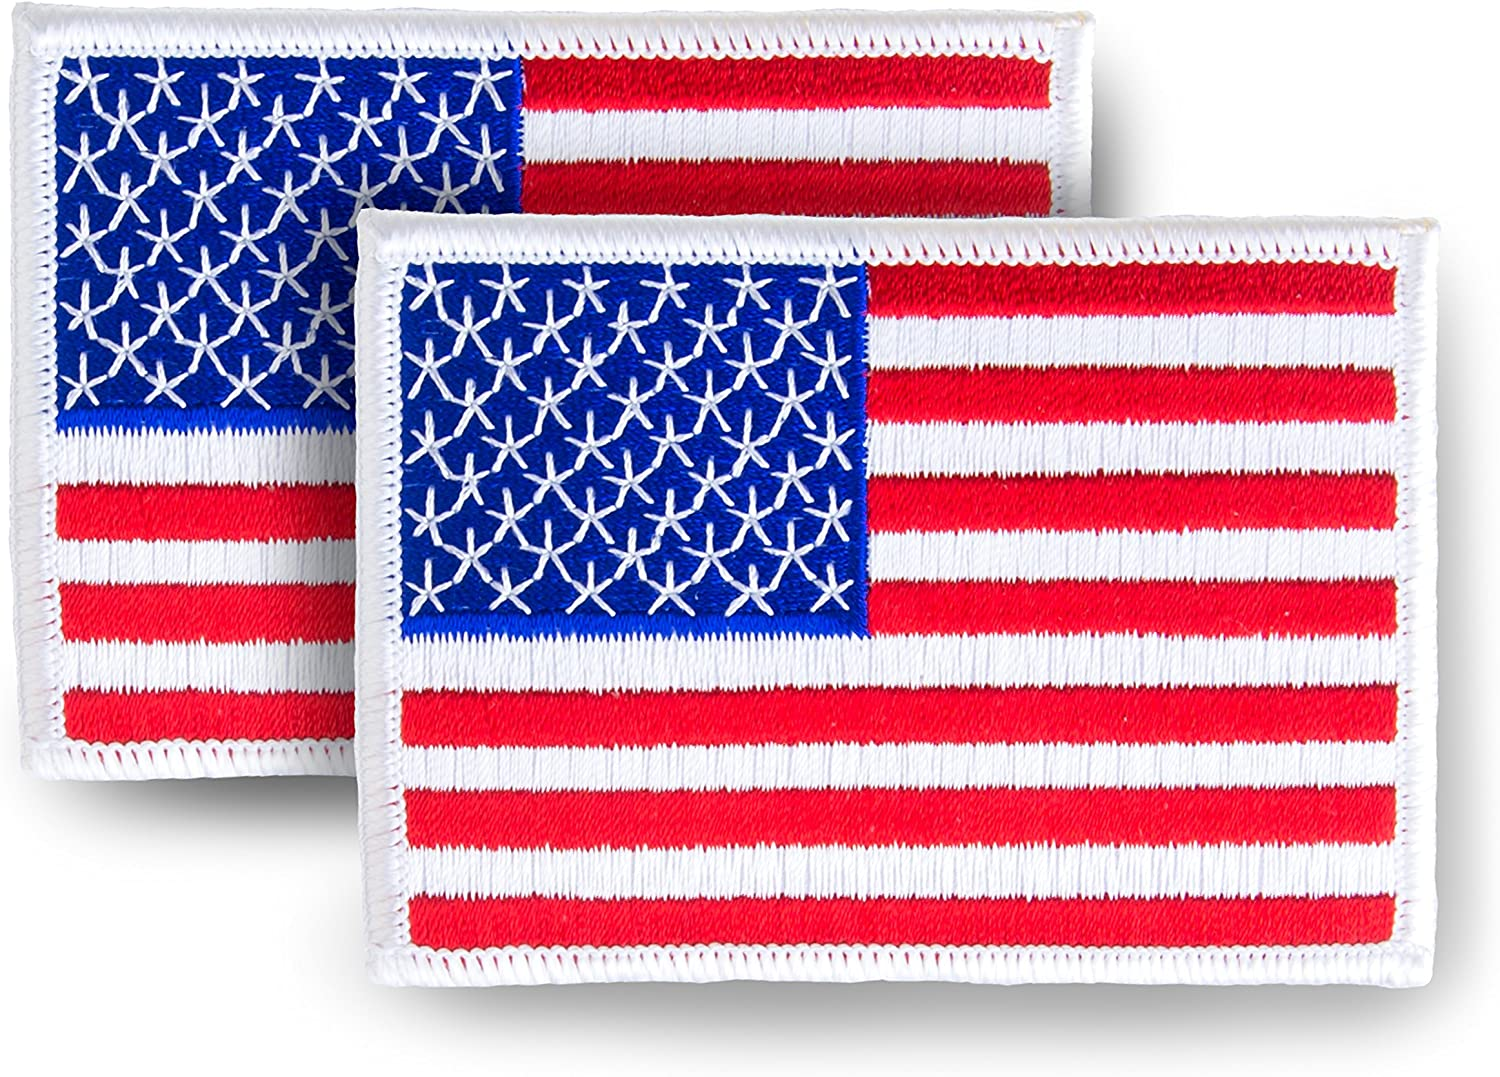 Skyhawk American Flag Max 40% OFF USA US Embroidered Sew Iron Patch 1 year warranty On W